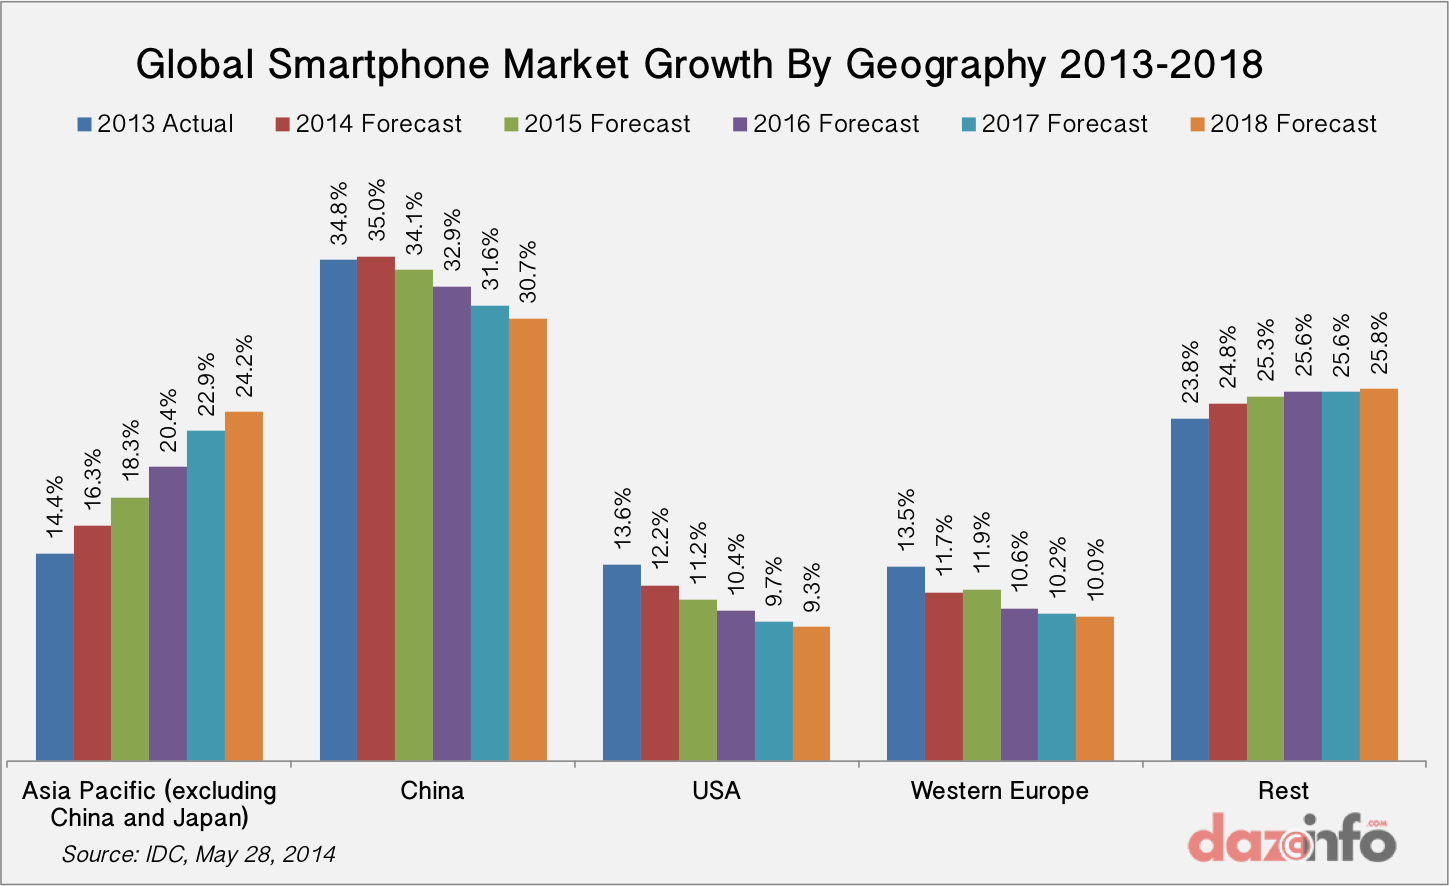 Global smartphone growth by region 2014 - 2018